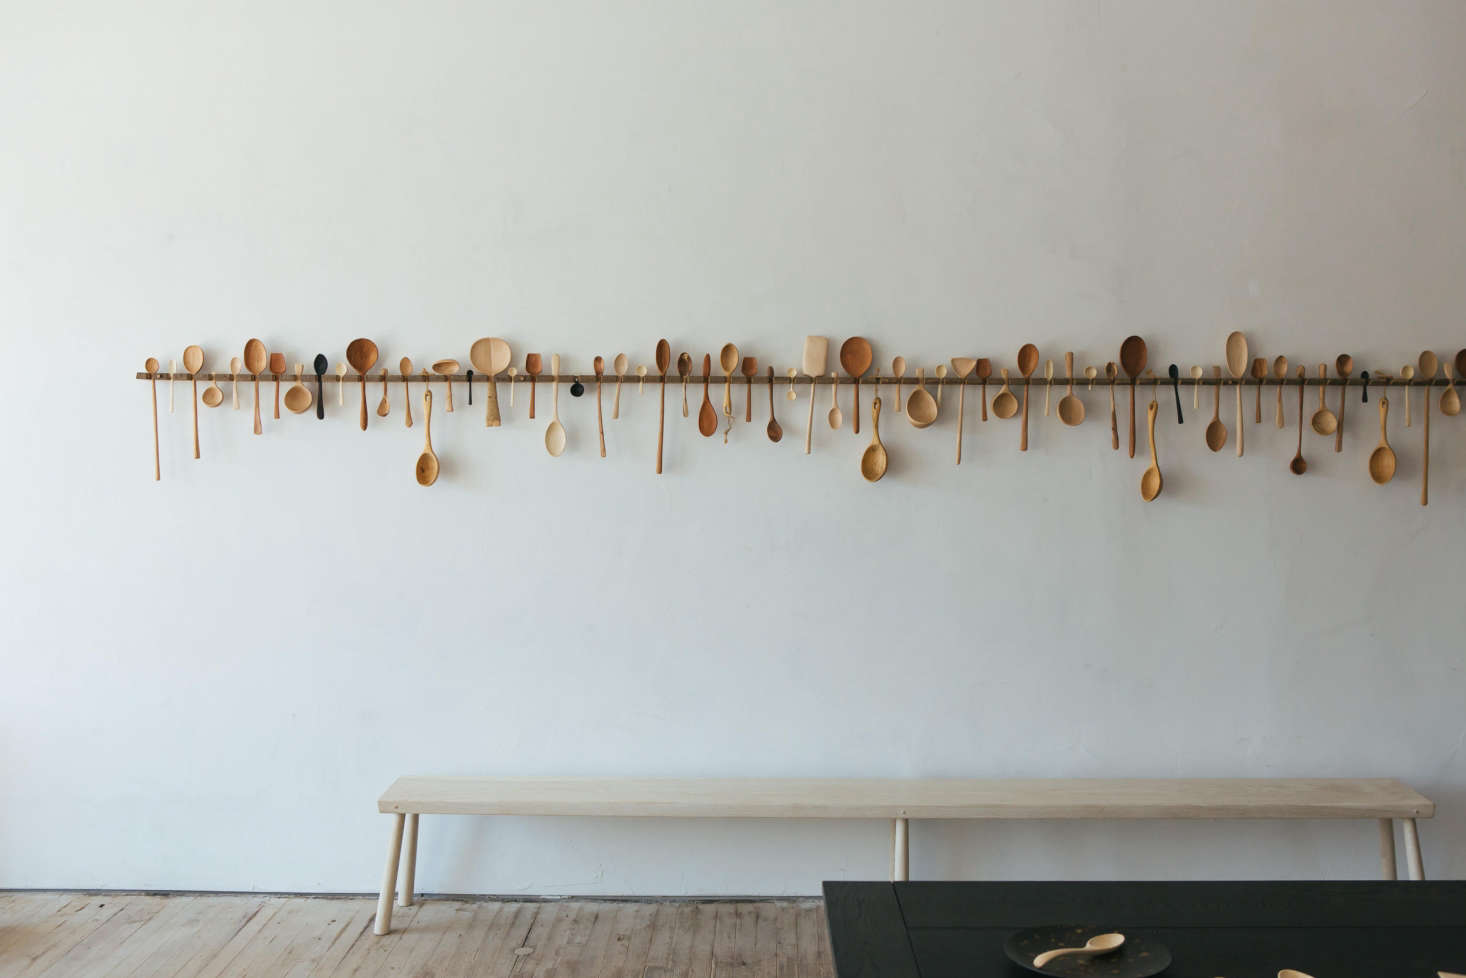 An array of hand-turned wooden spoons line the wall at the Blackcreek Mercantile & Trading Co. showroom in Kingston, New York. Photograph by Eberhart Smith from A New Store from Blackcreek Mercantile & Trading Co. in Kingston, New York.